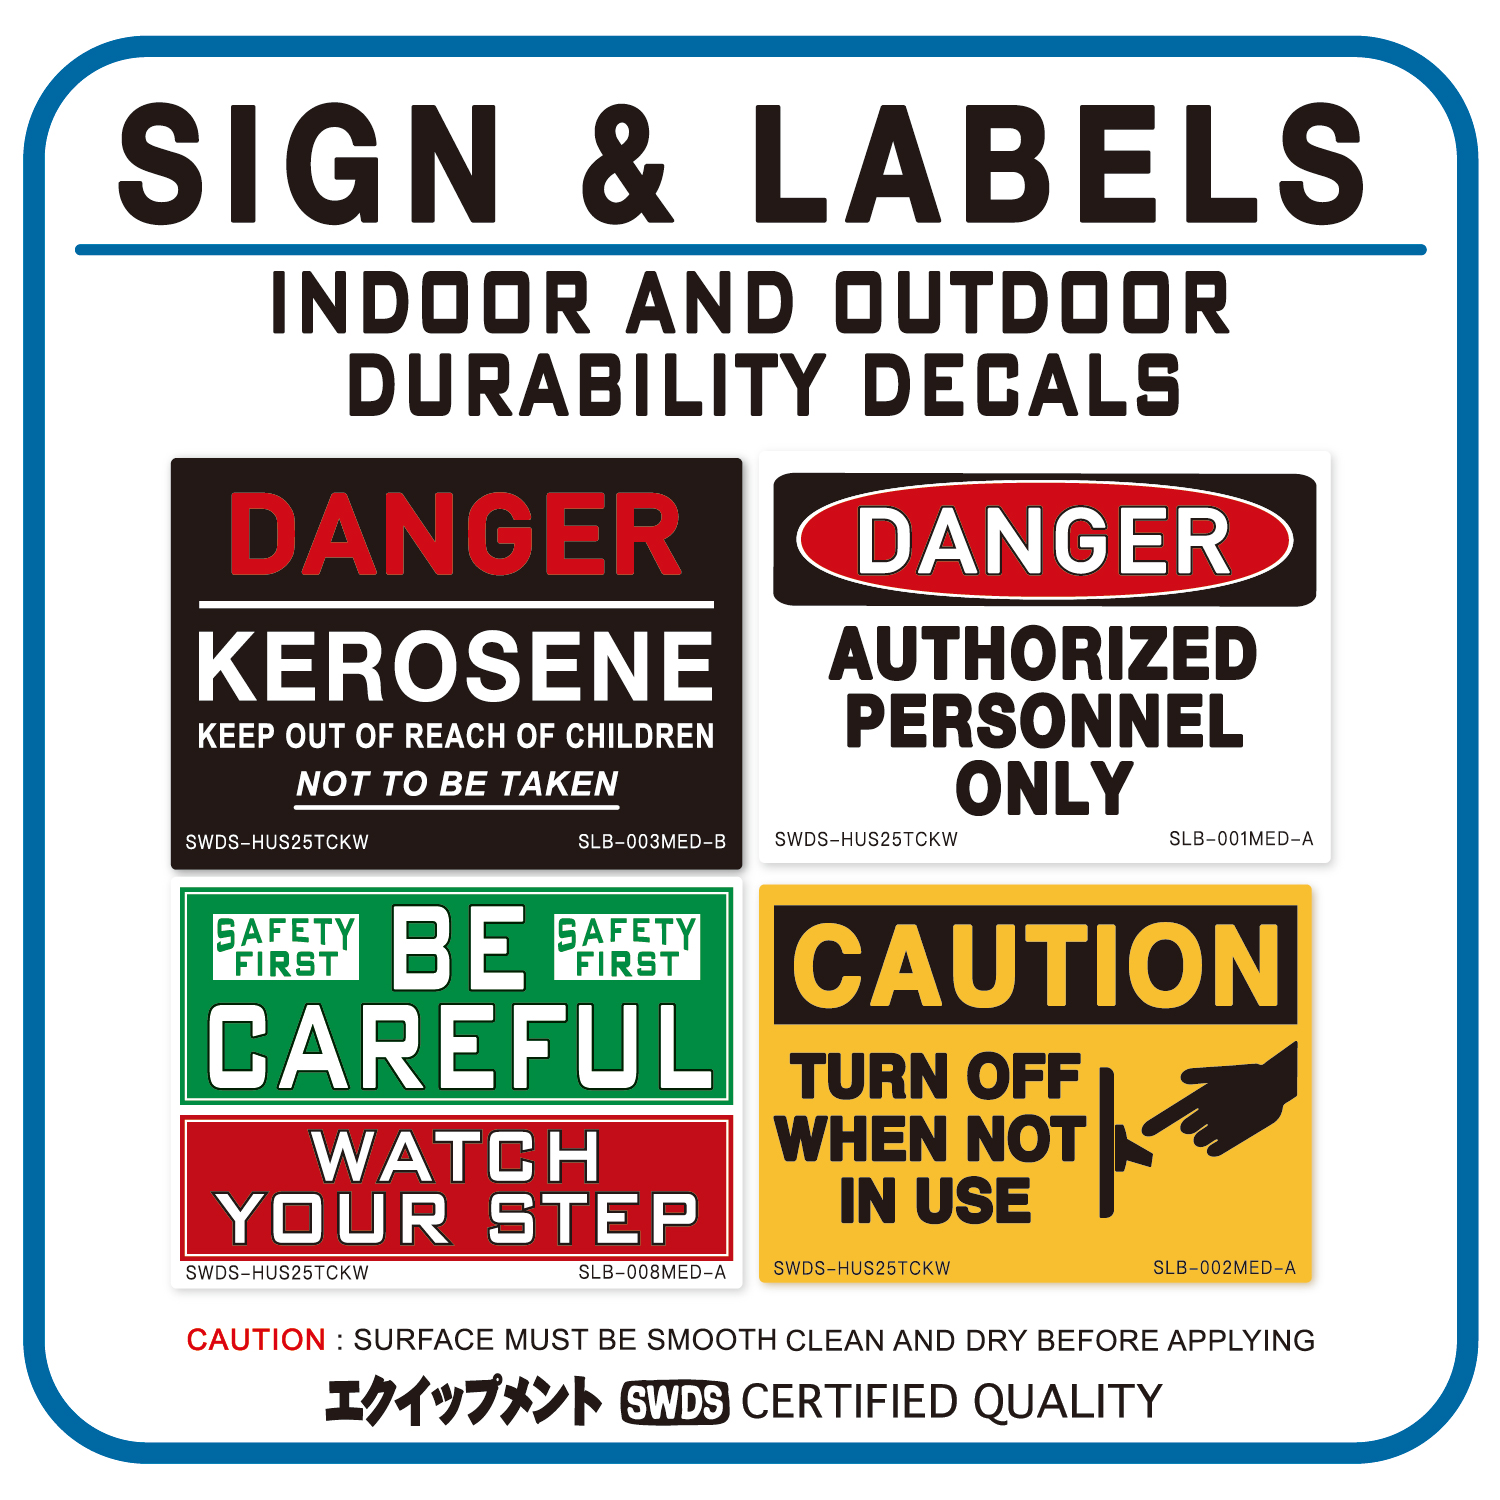 SIGN & LABELS